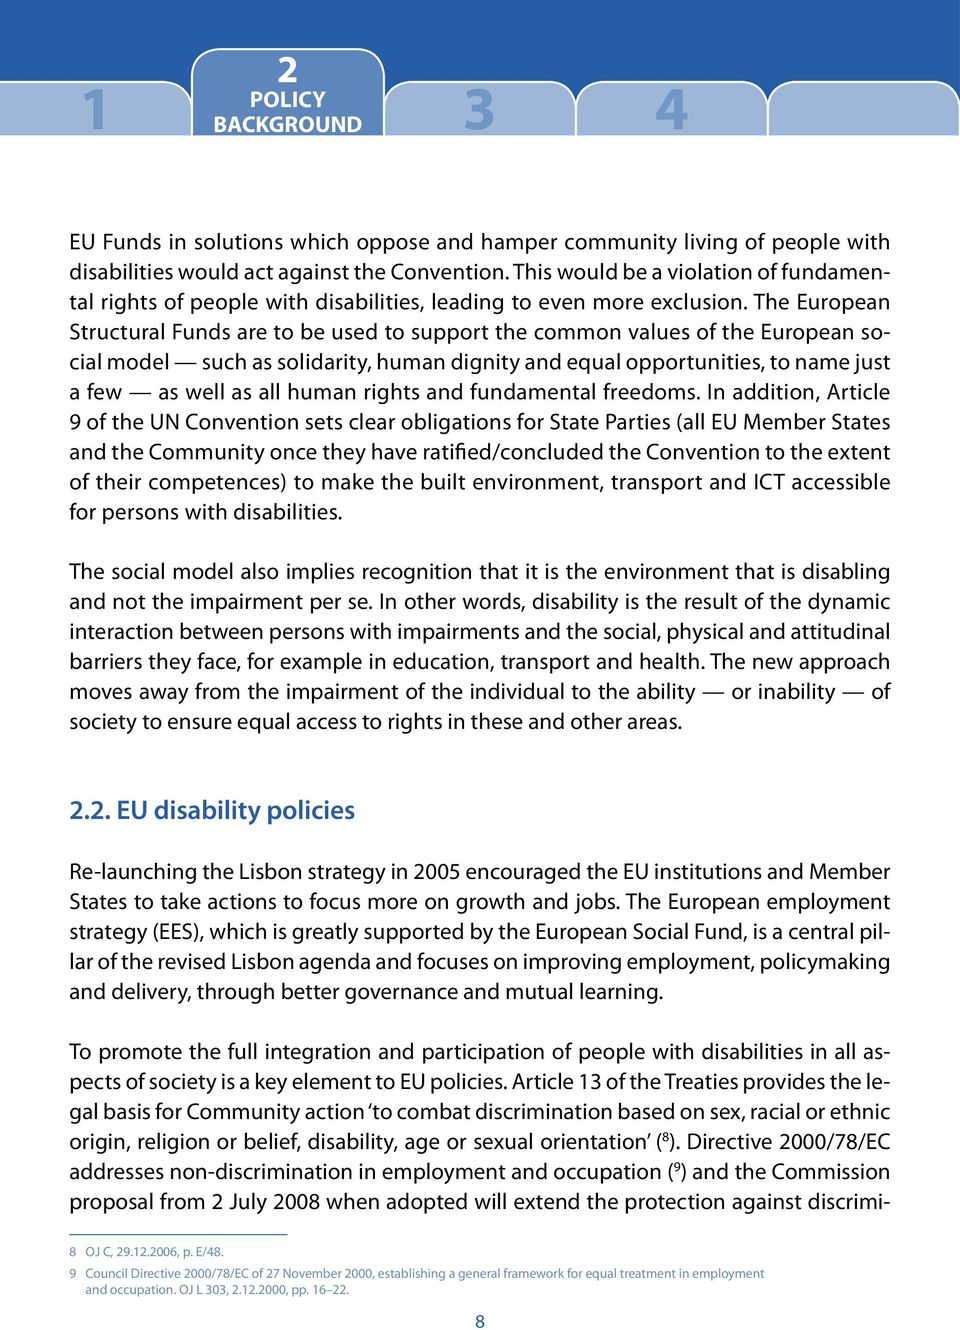 The European Structural Funds are to be used to support the common values of the European social model such as solidarity, human dignity and equal opportunities, to name just a few as well as all